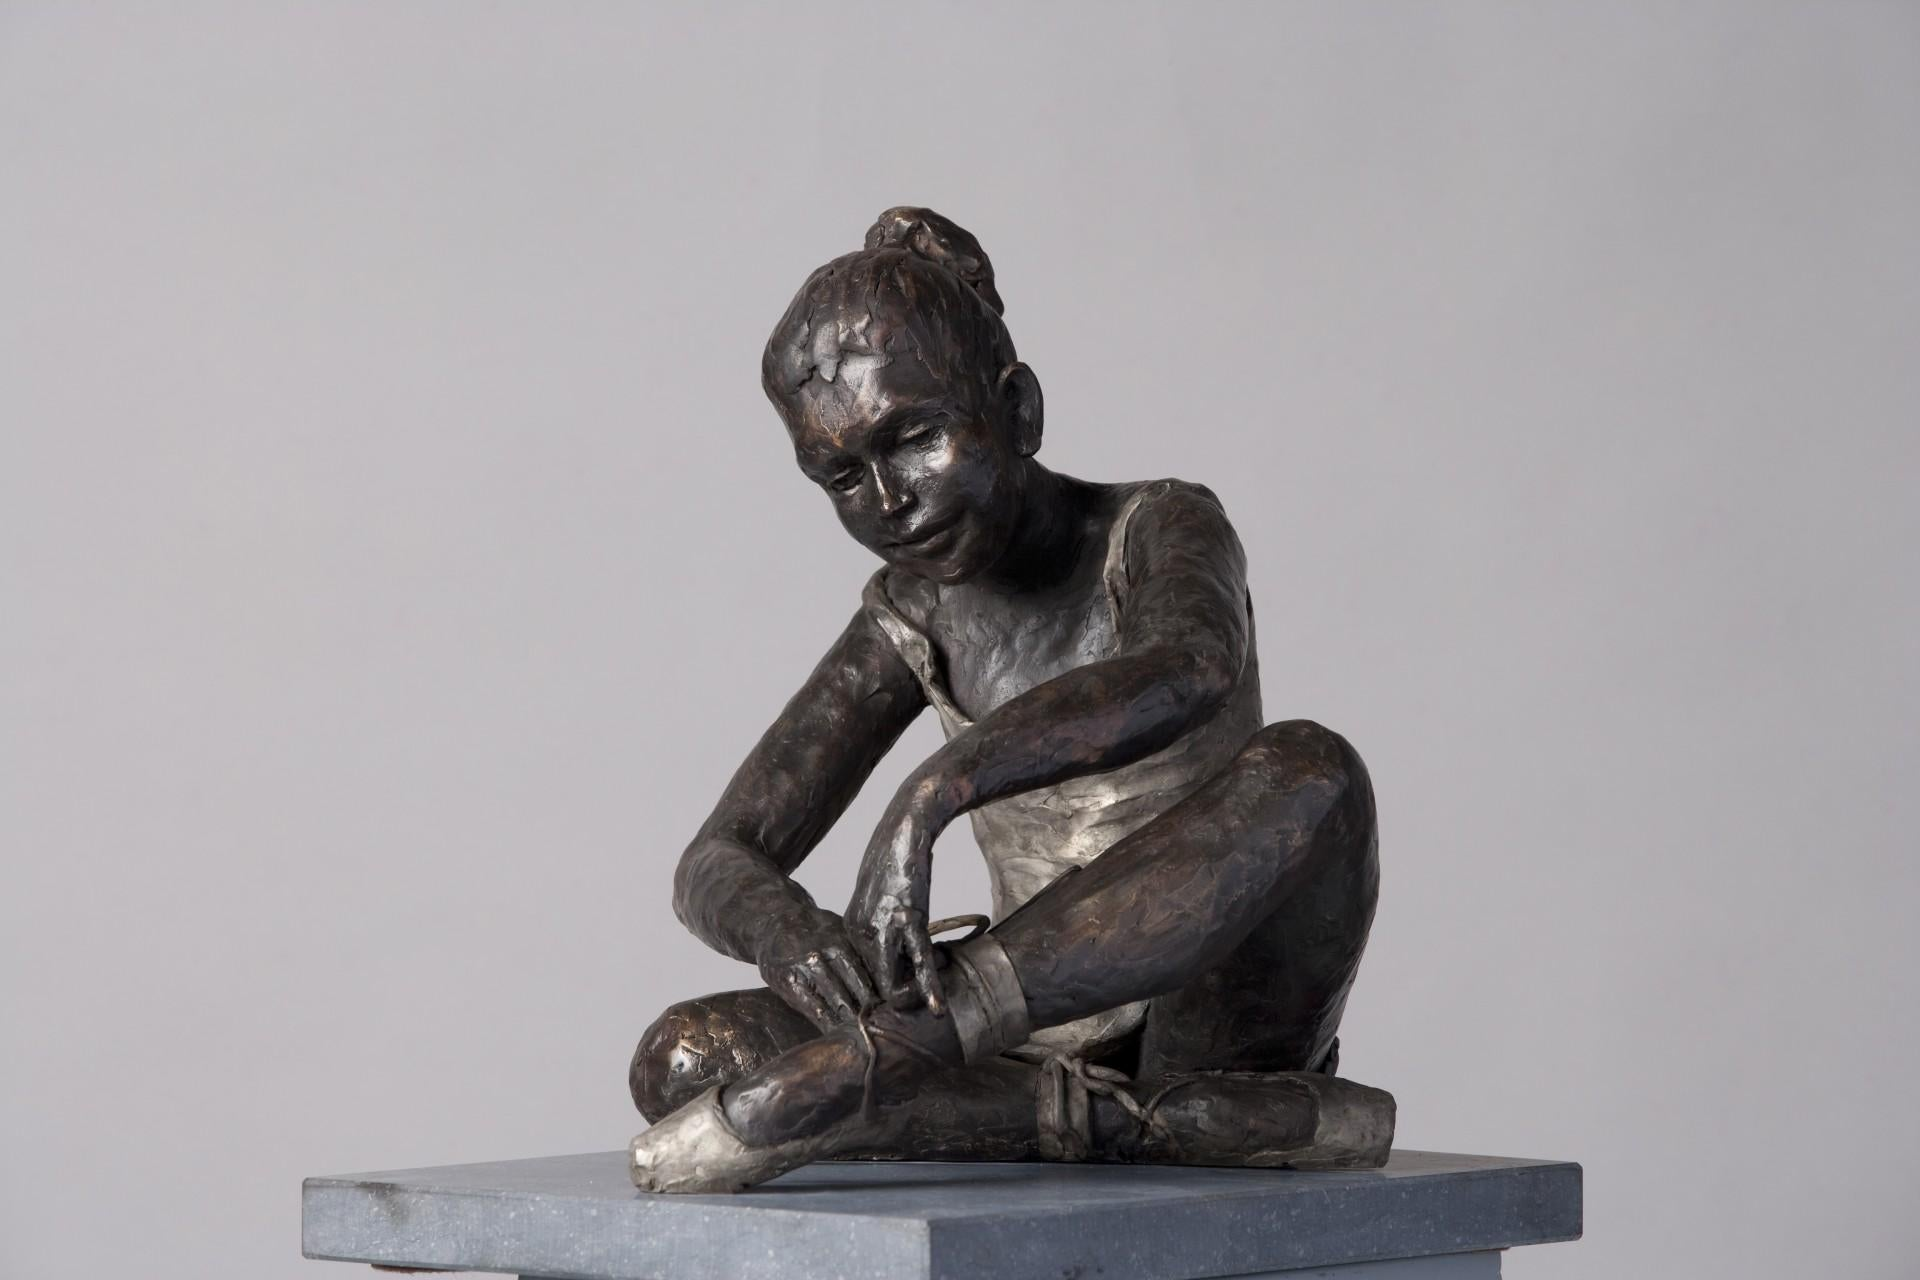 Vasily- 21st Century Sculpture of a ballet dancer sitting and tidying her shoe